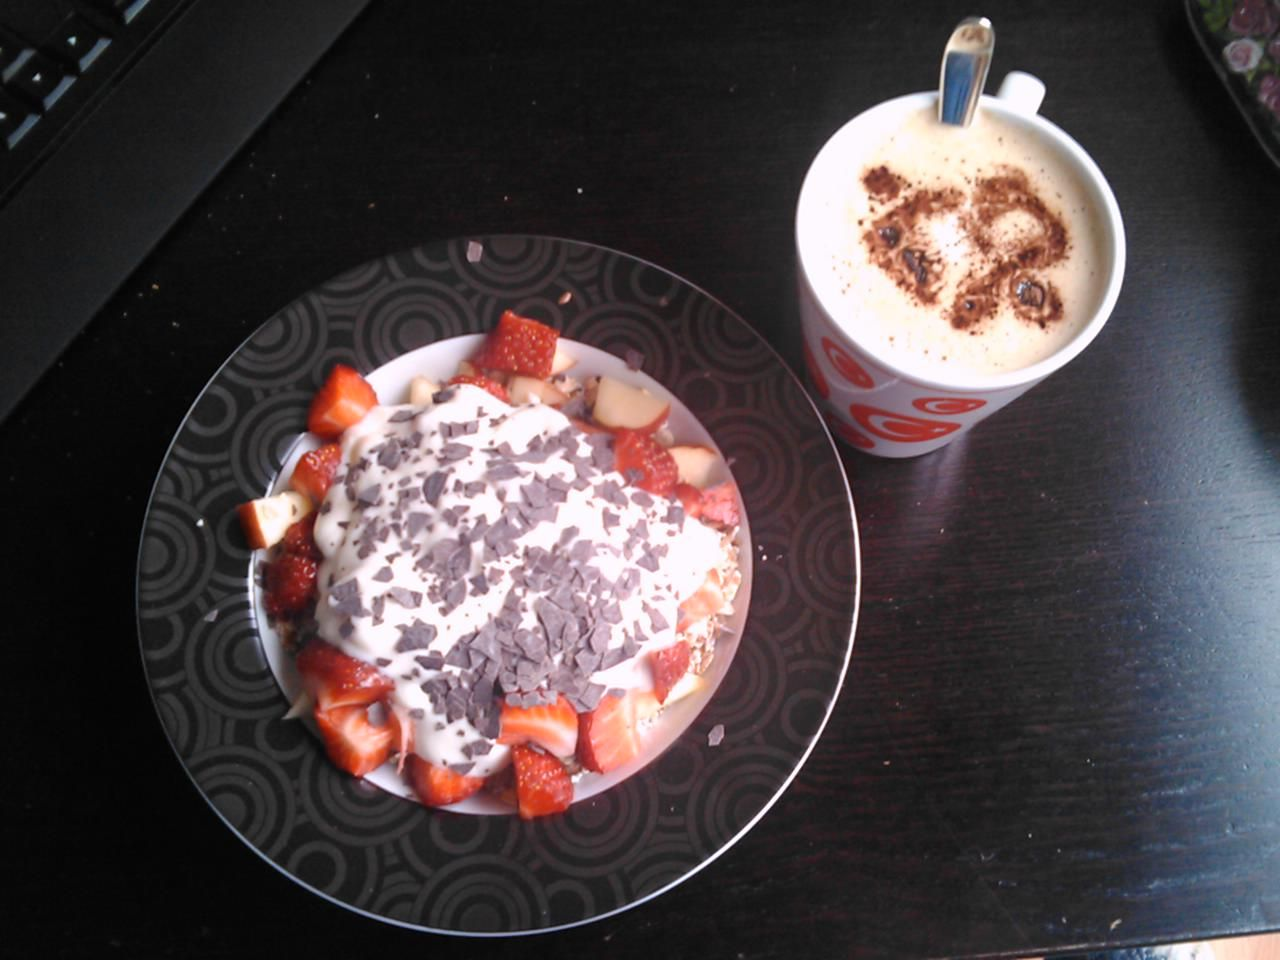 Cereals with fruits and yoghurt + Cappuccino ♥